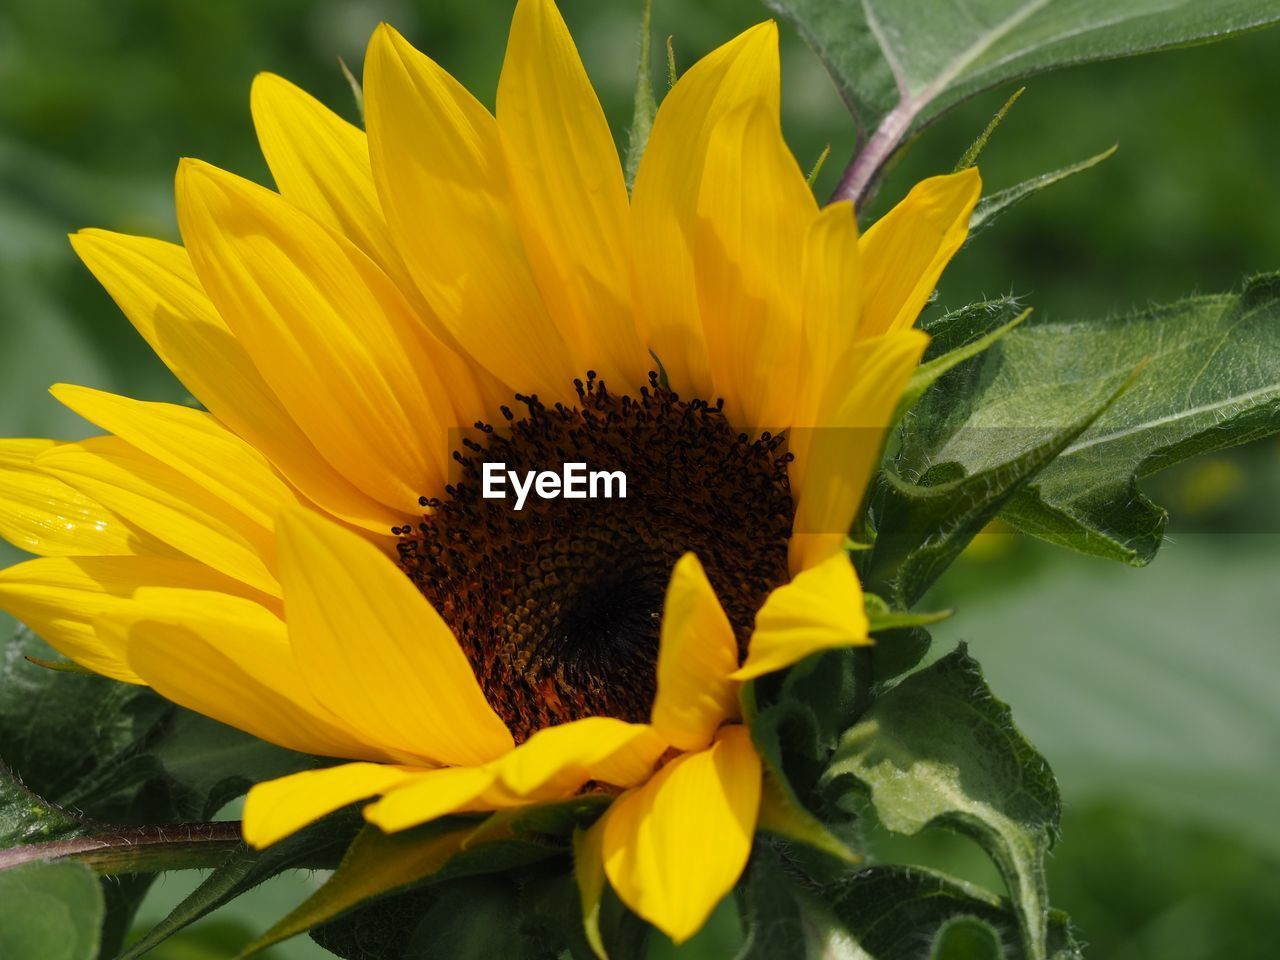 flowering plant, flower, yellow, plant, flower head, growth, petal, inflorescence, vulnerability, freshness, fragility, beauty in nature, close-up, pollen, nature, sunflower, day, no people, leaf, outdoors, gazania, sepal